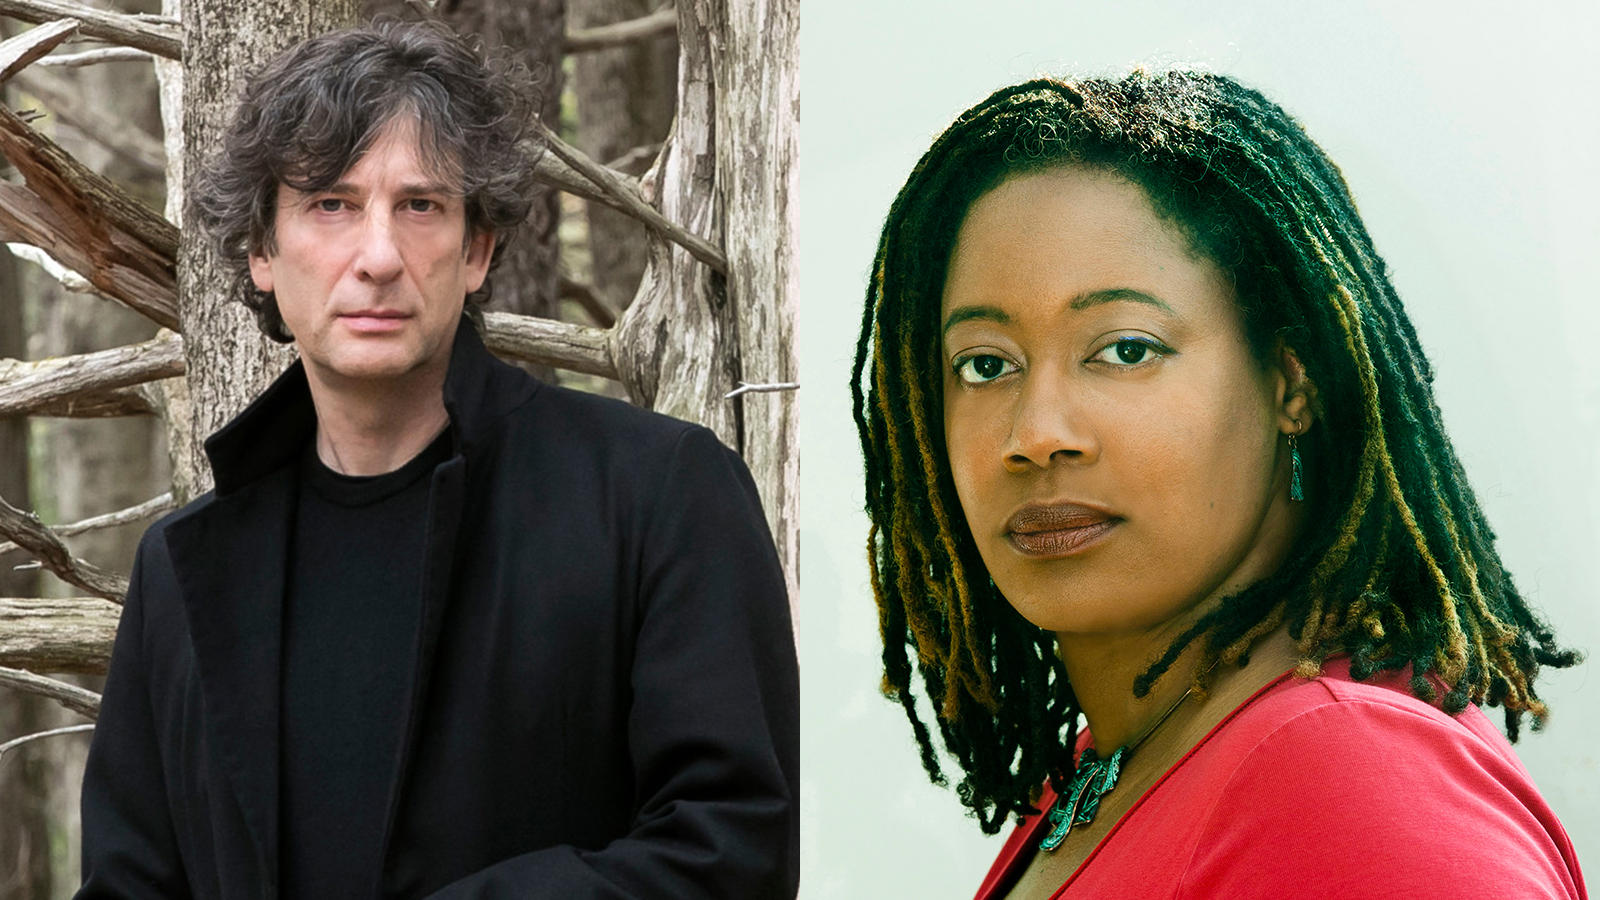 [LIVE WEBCAST: Neil Gaiman In Conversation with N. K. Jemisin] Neil Gaiman by Beowulf Sheehan; N. K. Jemisin by Laura Hanifin